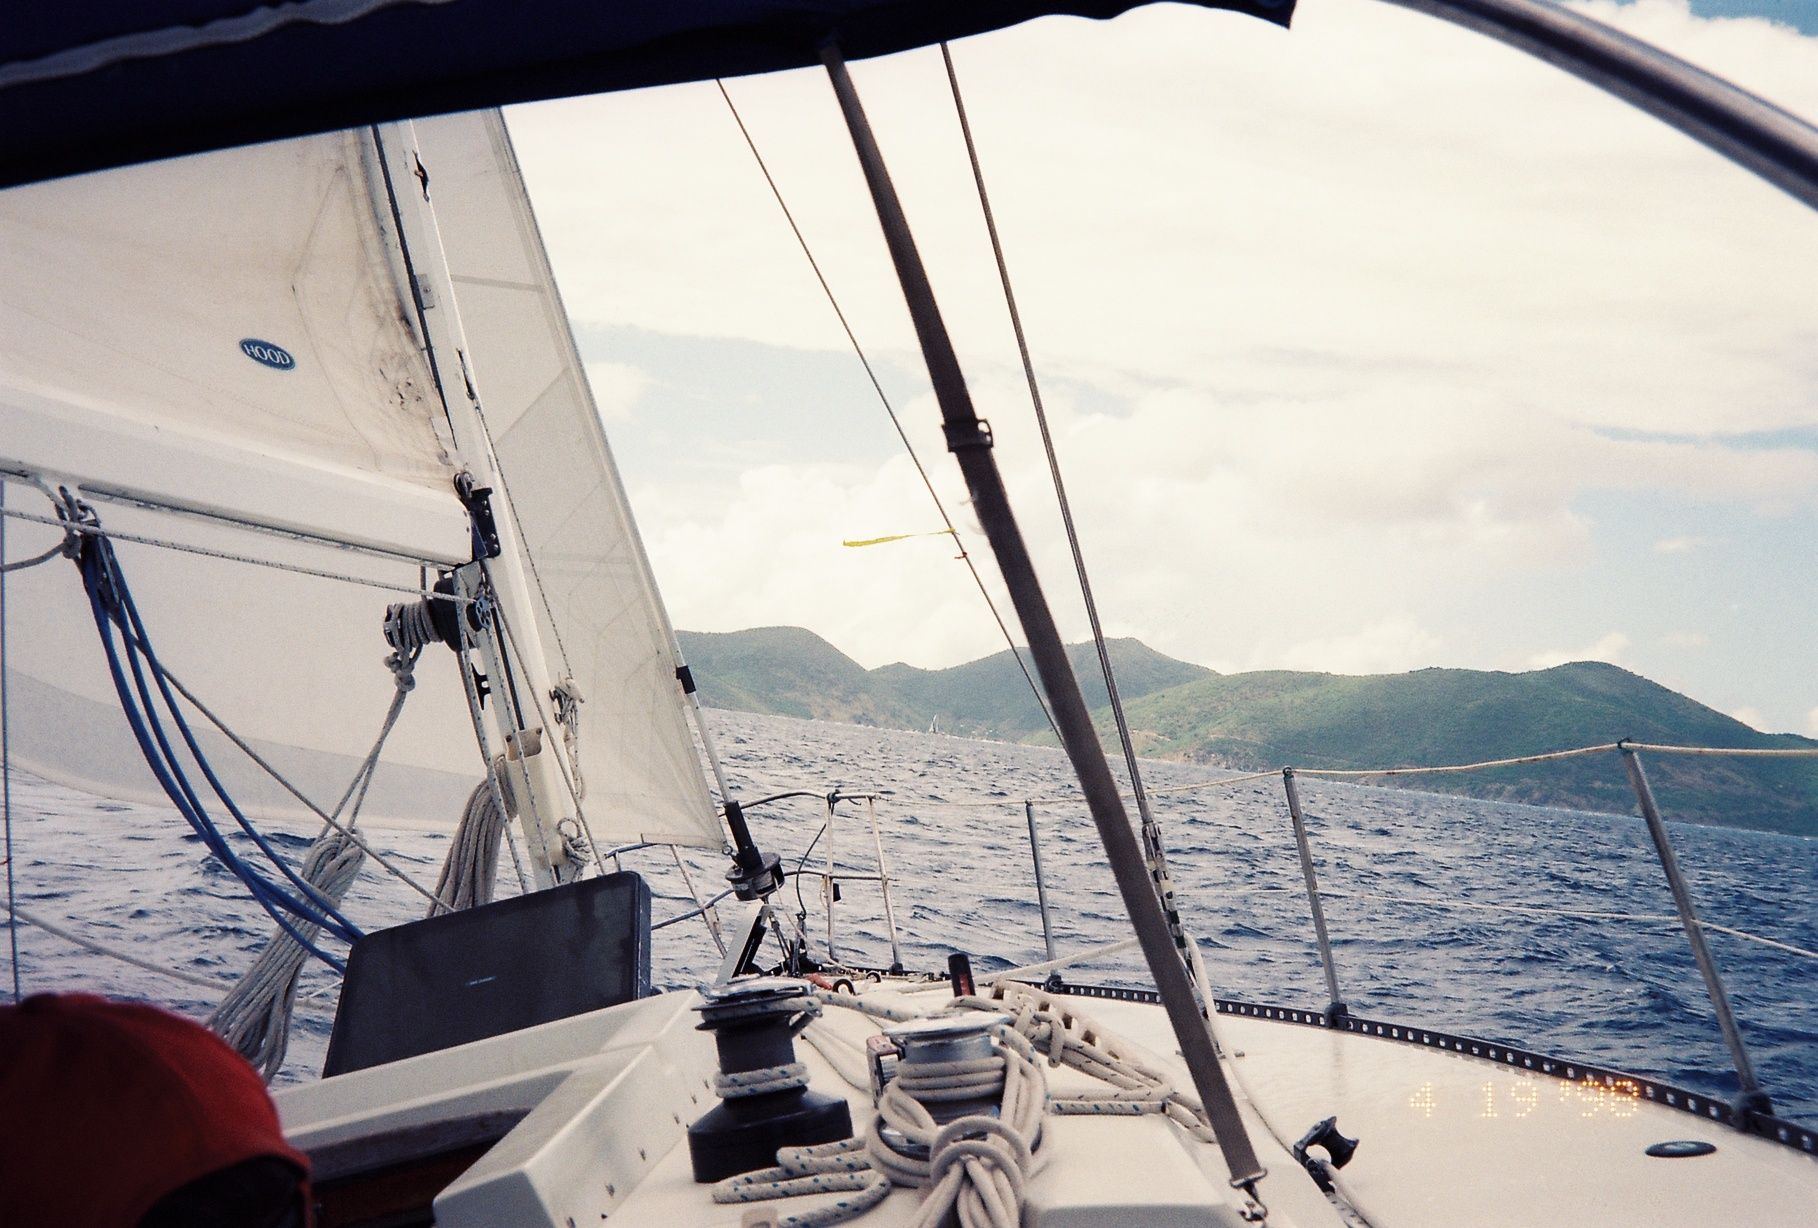 On my visit to the bvi we got a lot of great sailing done